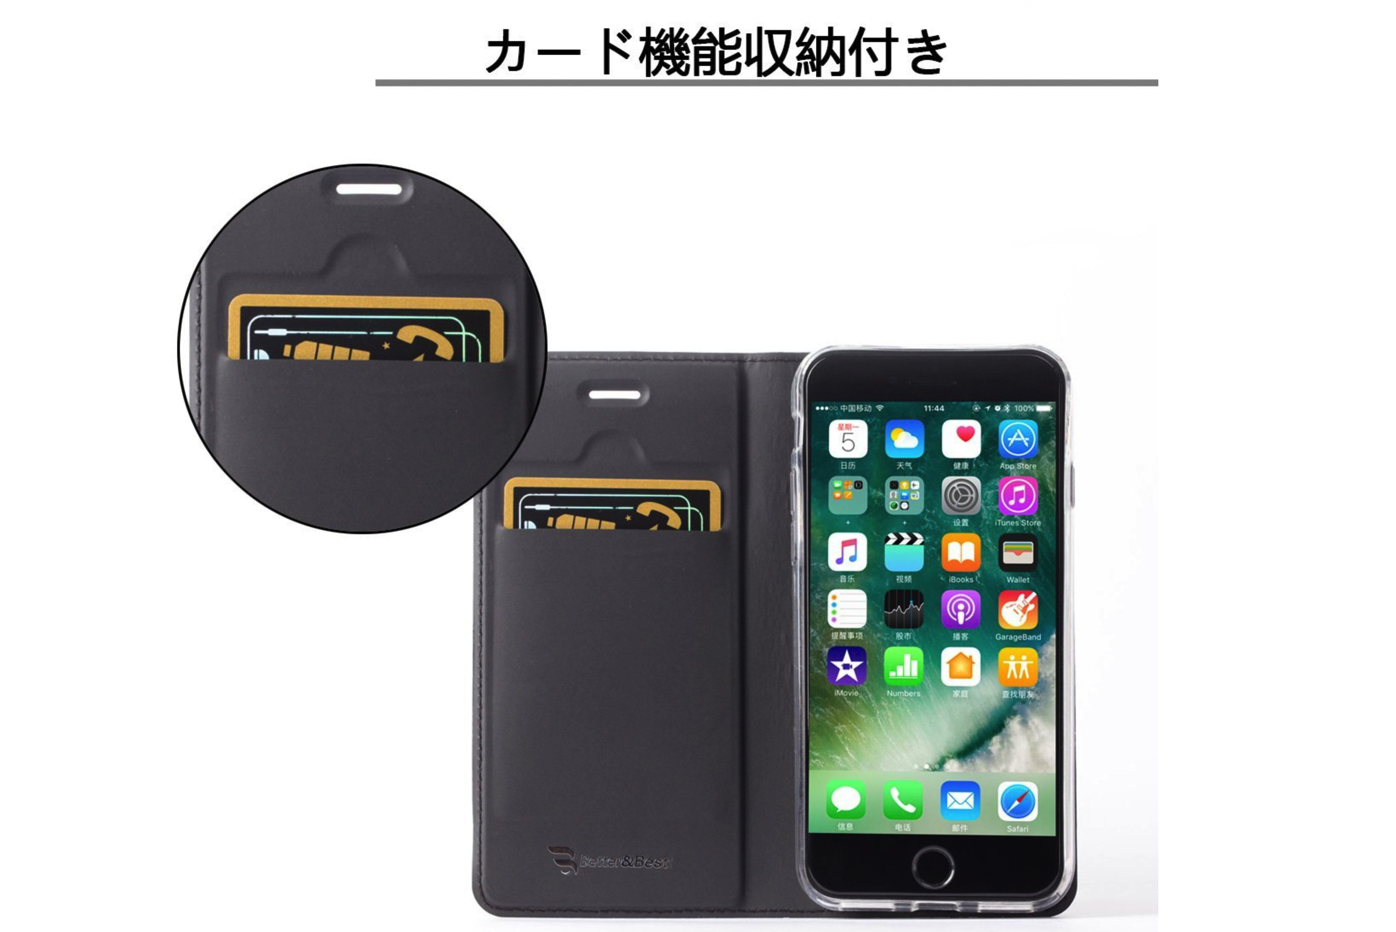 B&B iPhone6 ケース-3